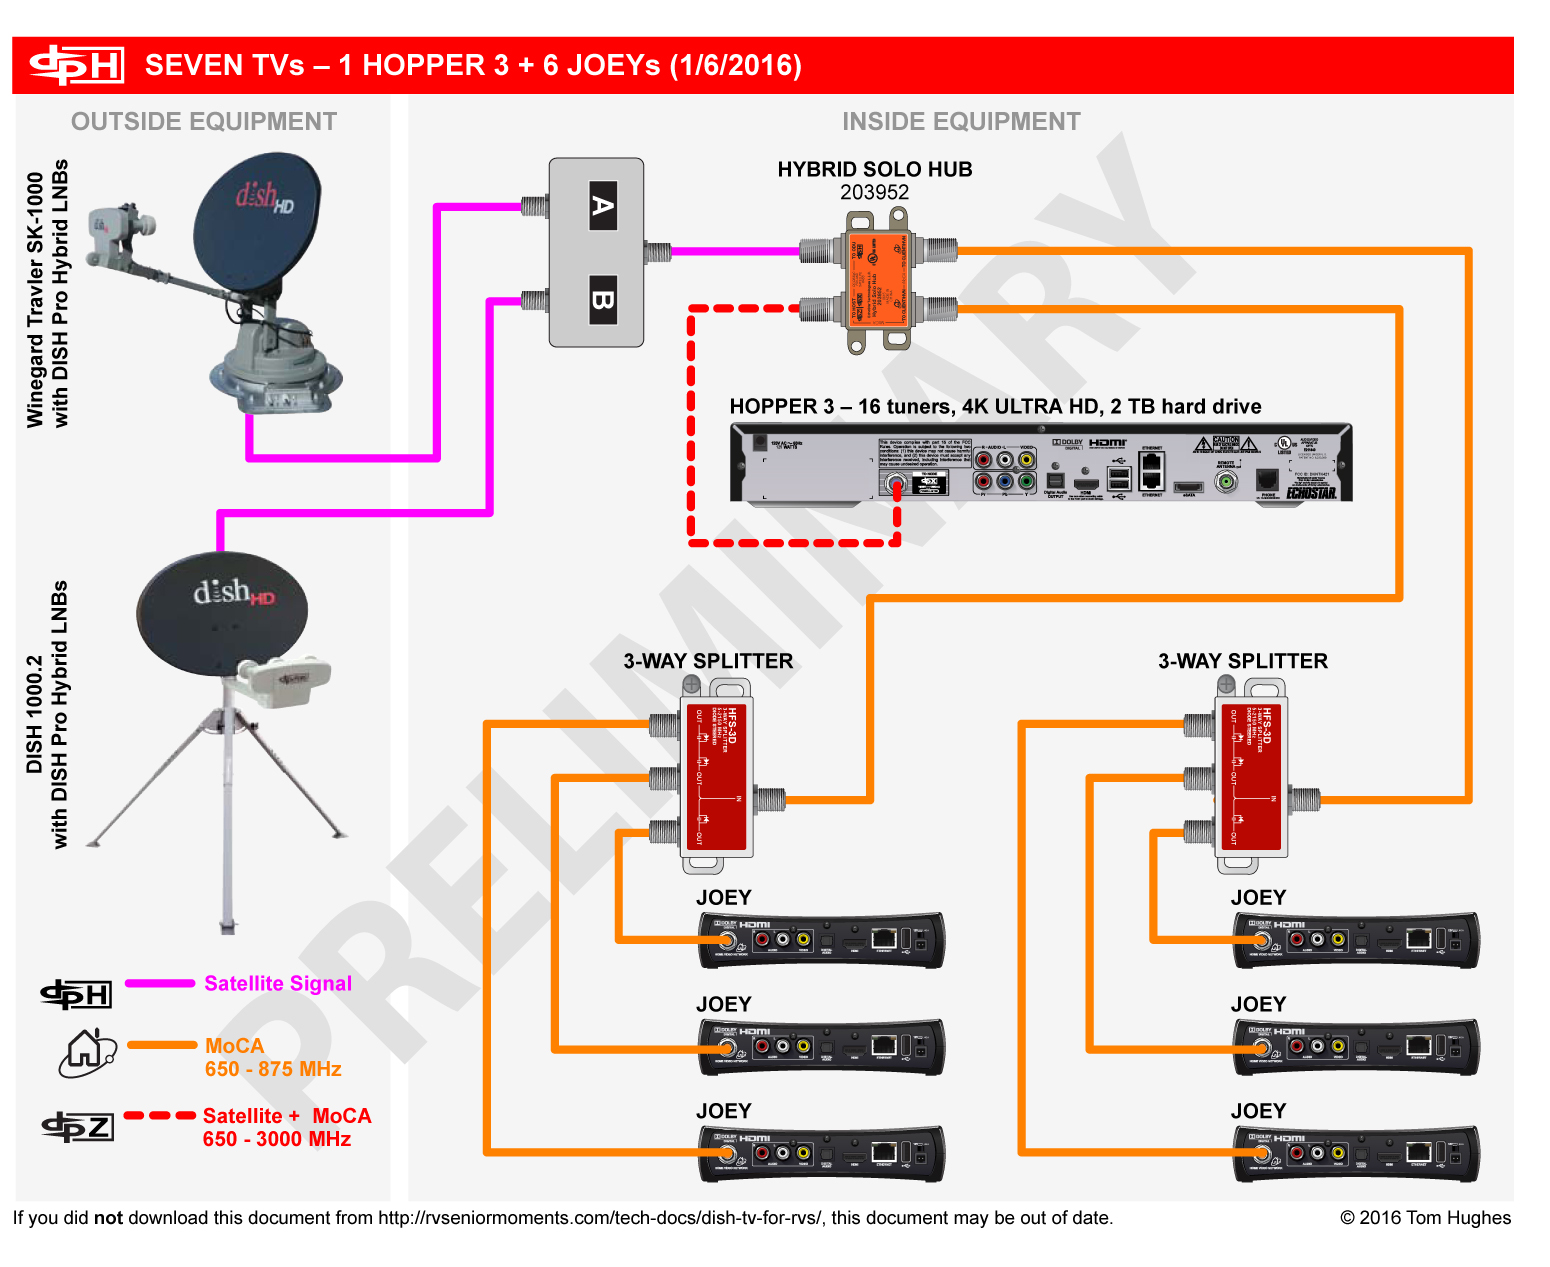 new dish hopper 3 announced satellite tv and radio on the road tv antenna wiring diagram dph_seventvs_1hopper_7joeys jpg